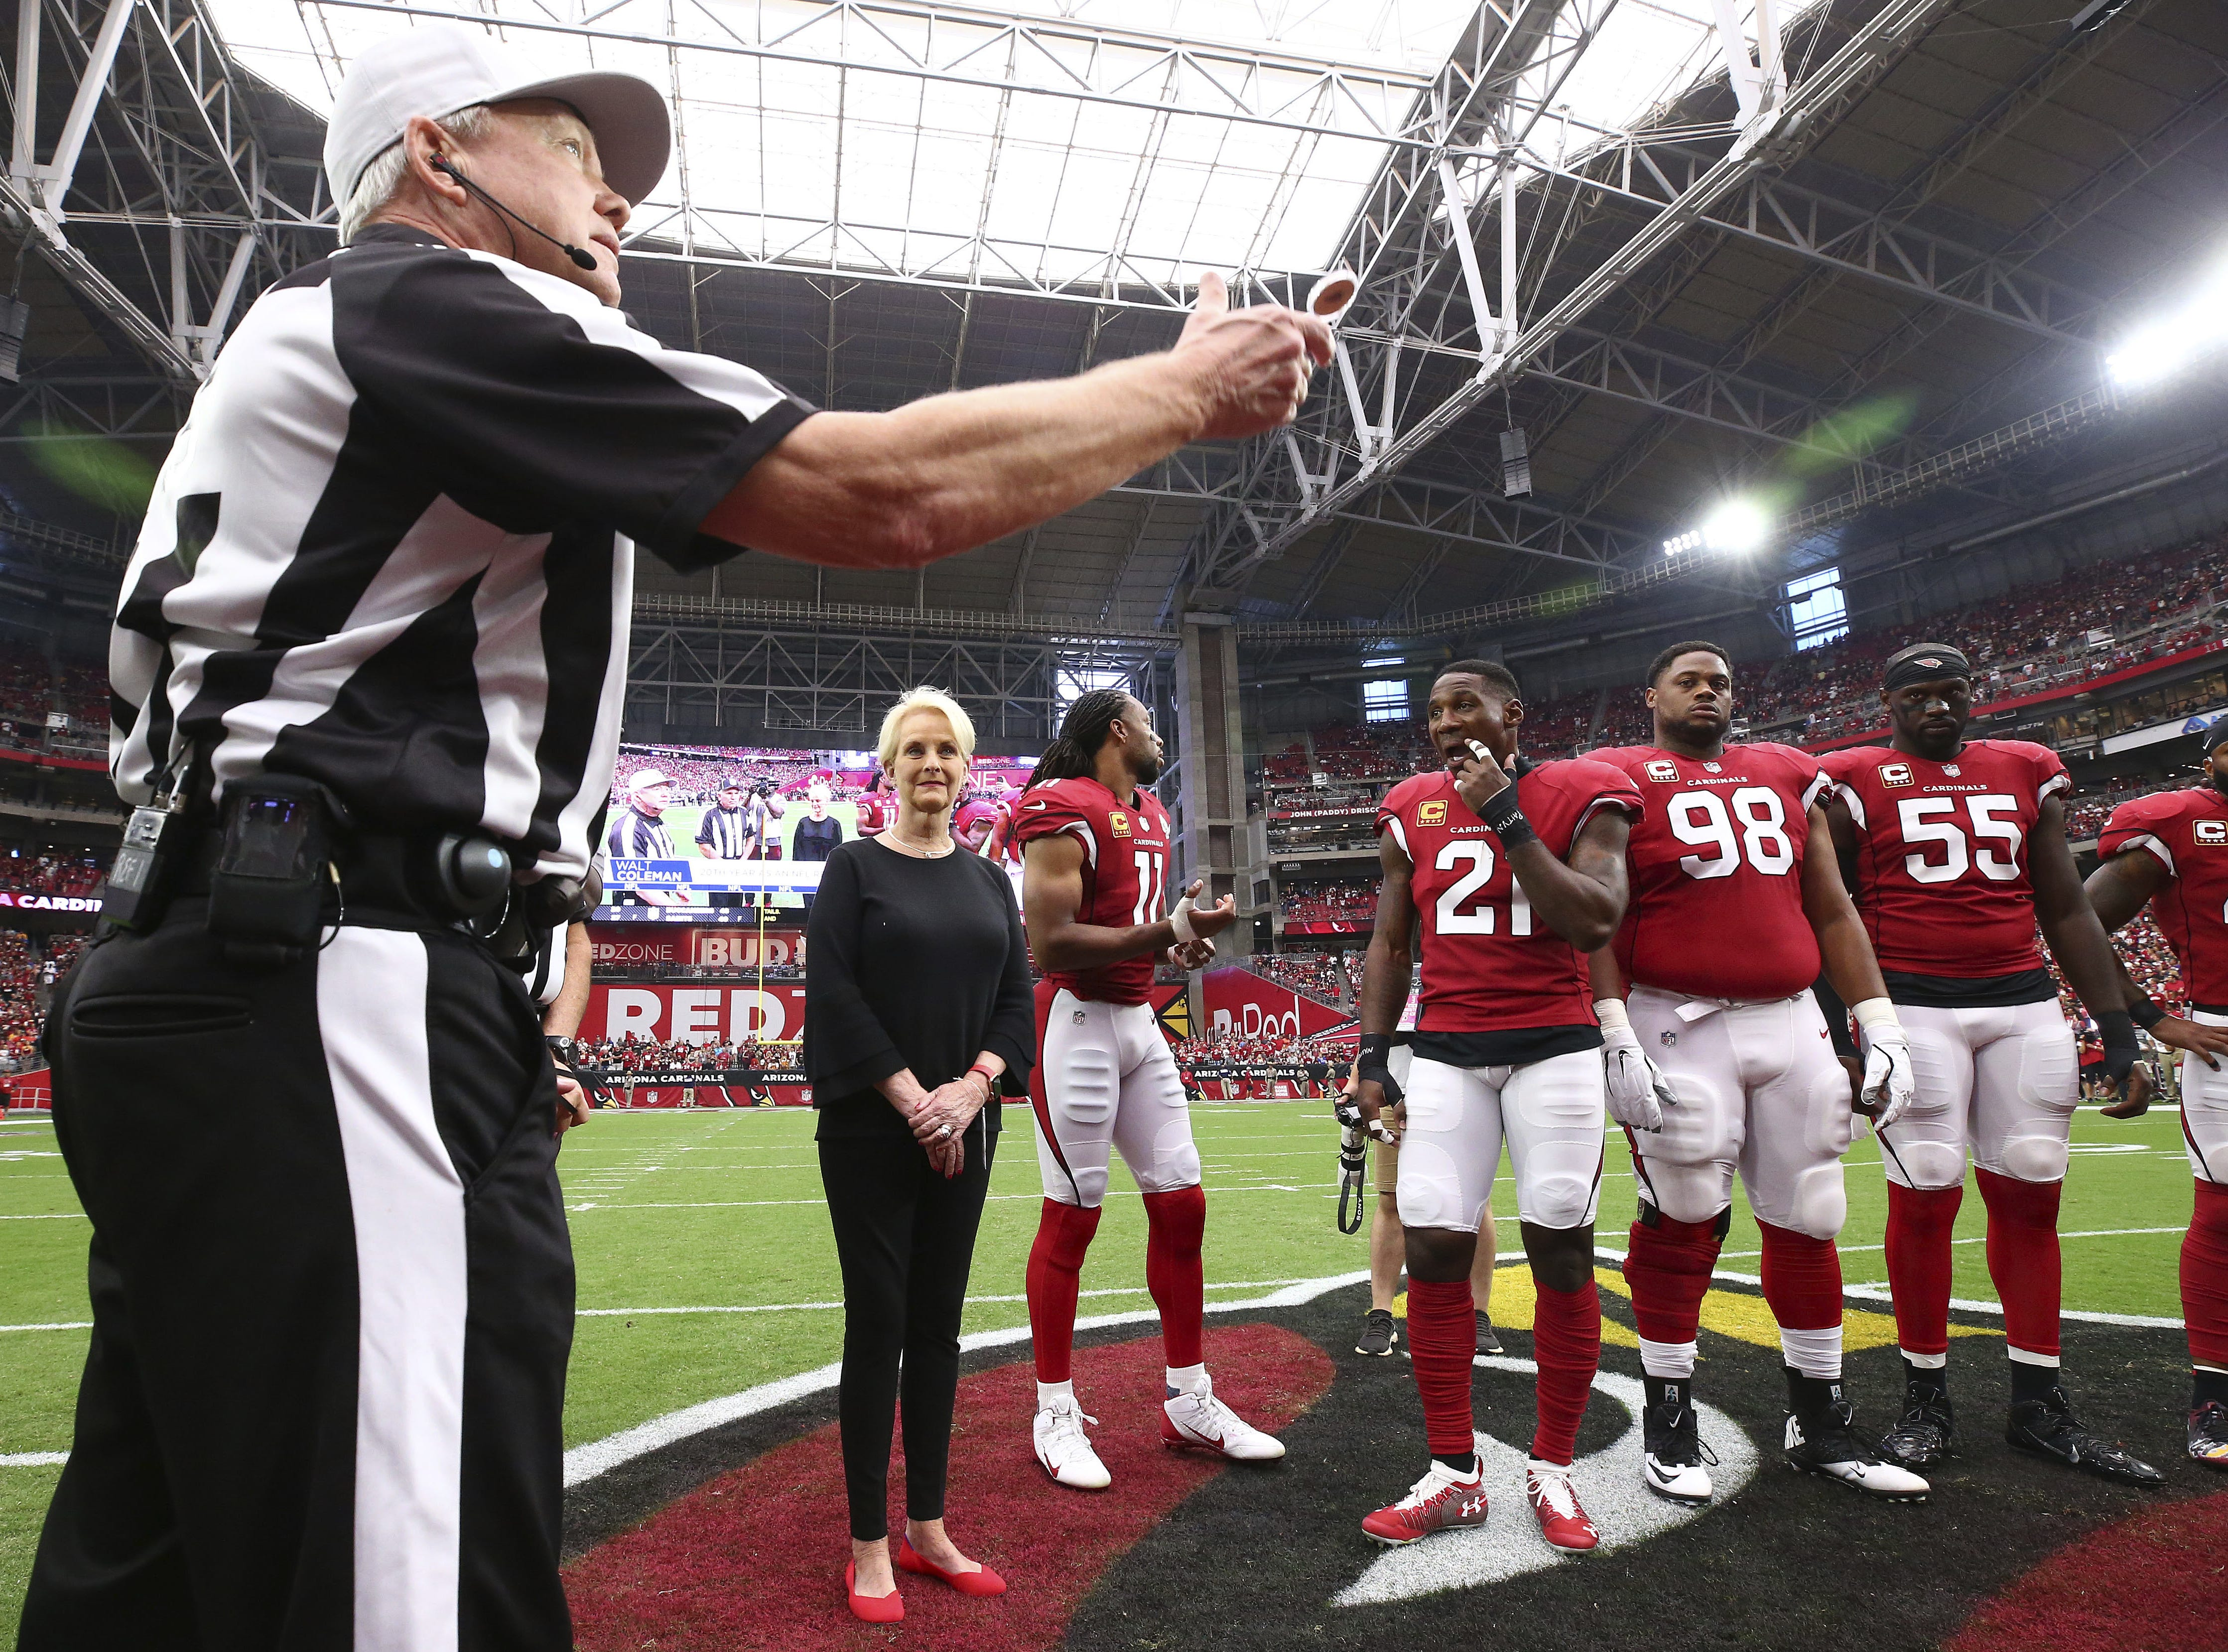 Cindy McCain, wife of the late U.S. Sen. John McCain stands with Arizona Cardinals' Larry Fitzgerald (11), Patrick Peterson (21), Corey Peters (98) and Chandler Jones (55) as an honorary team captain as referee Walt Coleman tosses the coin prior to an NFL football game against the Washington Redskins, Sept. 9, 2018, in Glendale.